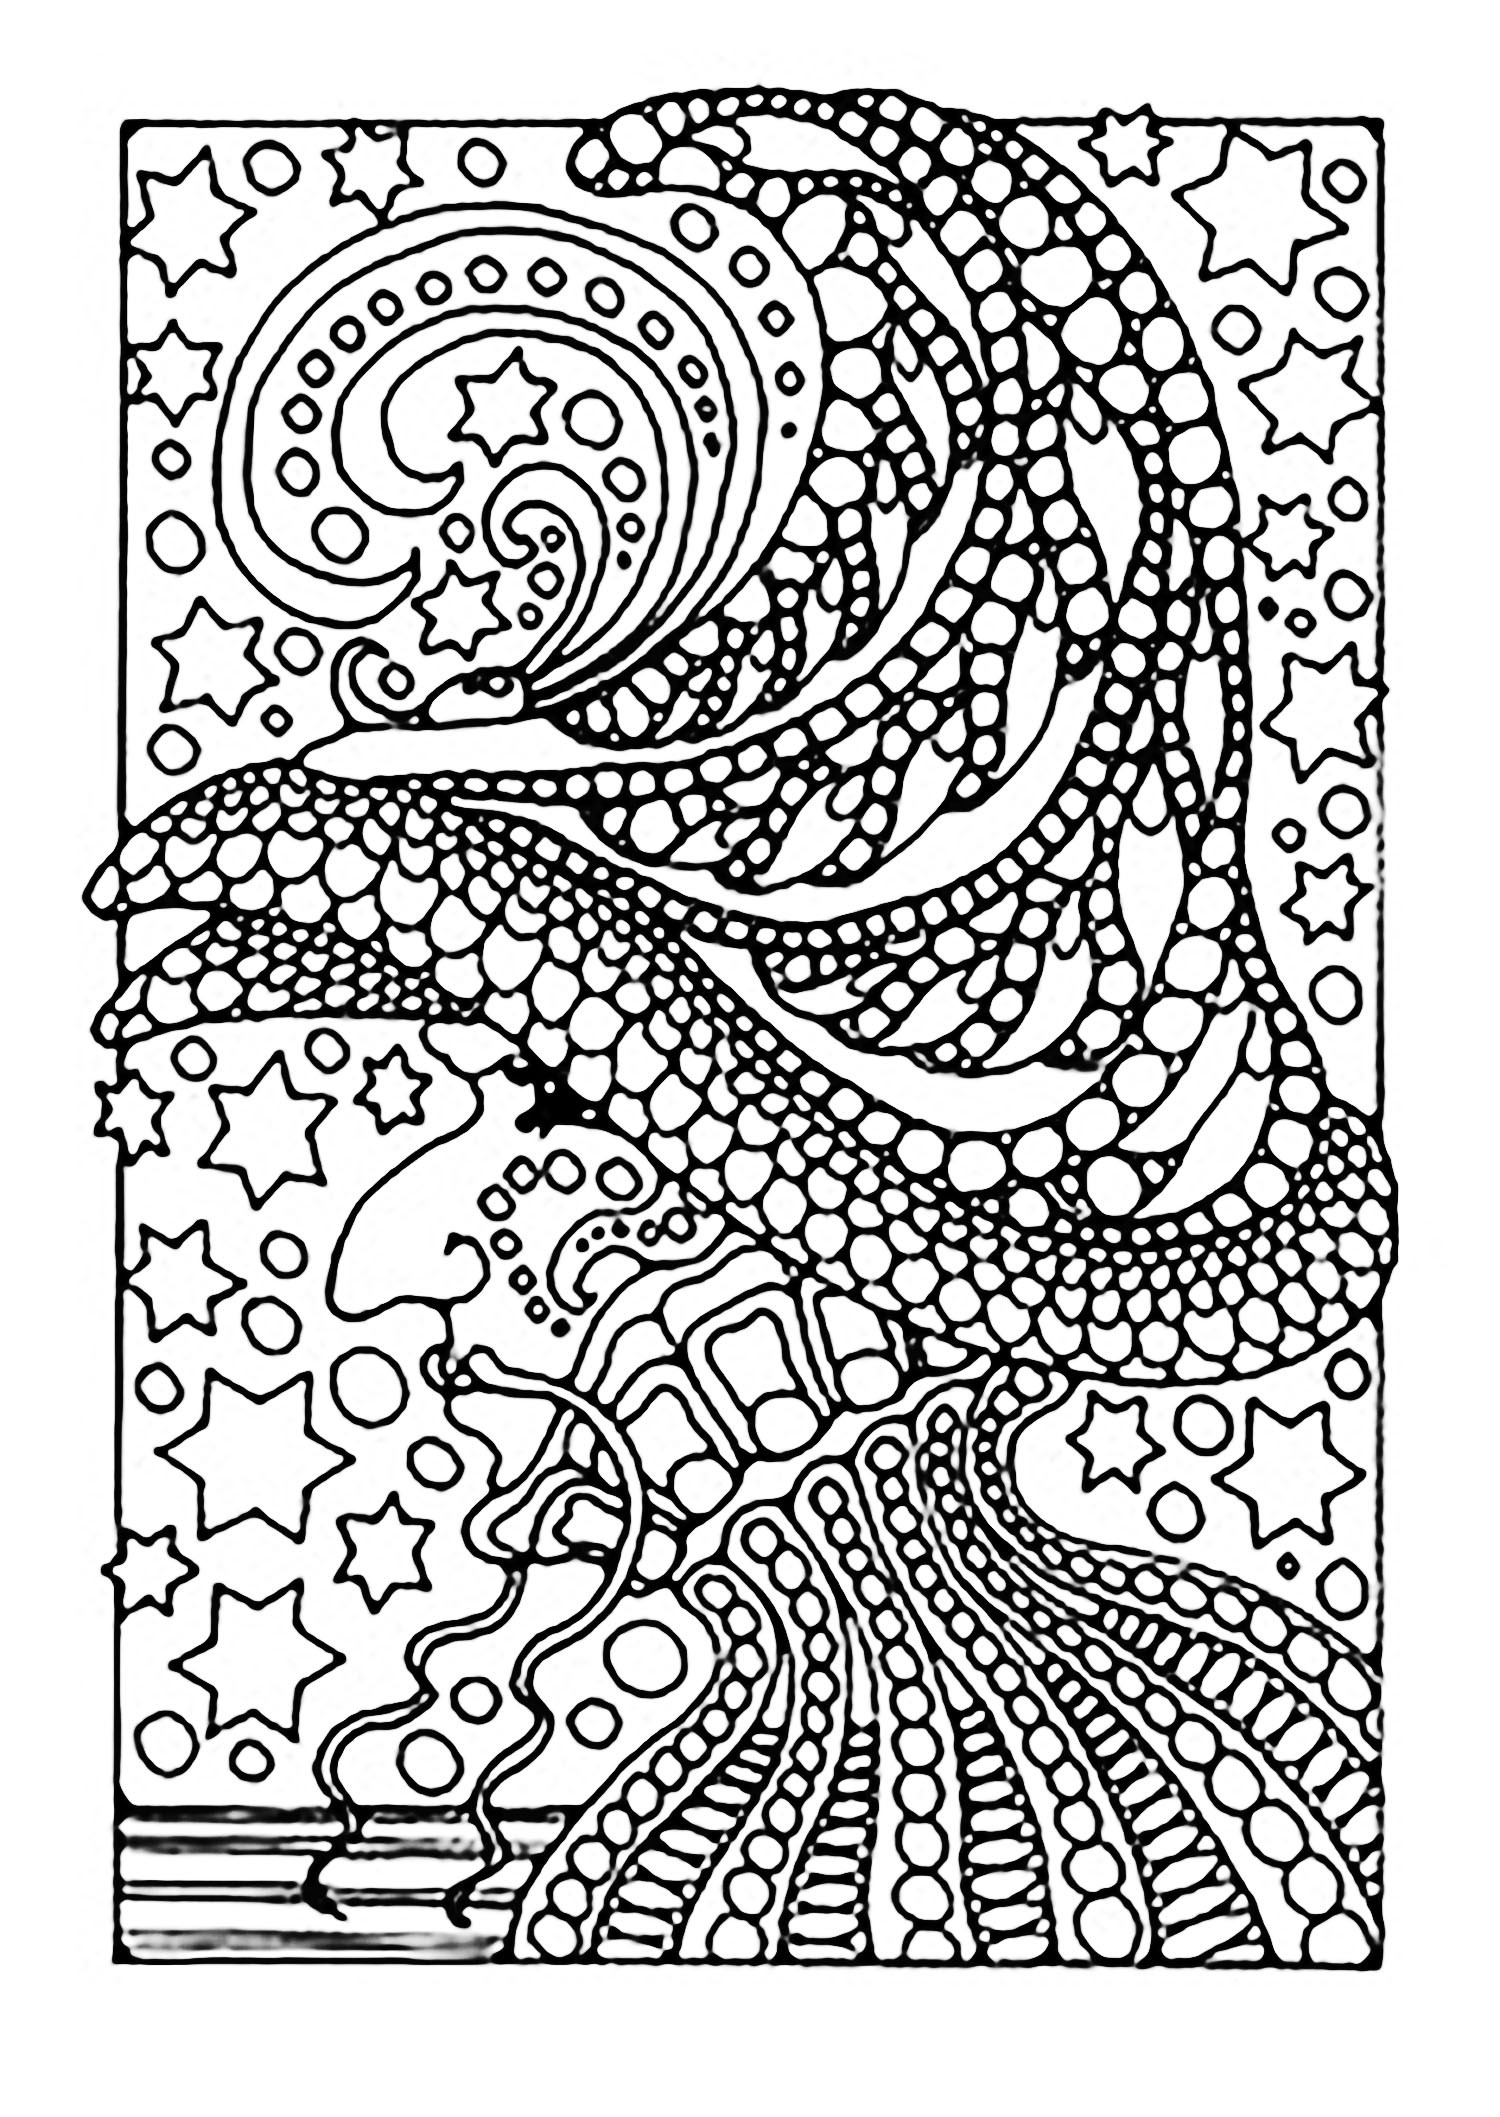 Scary Halloween Coloring Pages For Adults  Halloween witch and stars Halloween Adult Coloring Pages